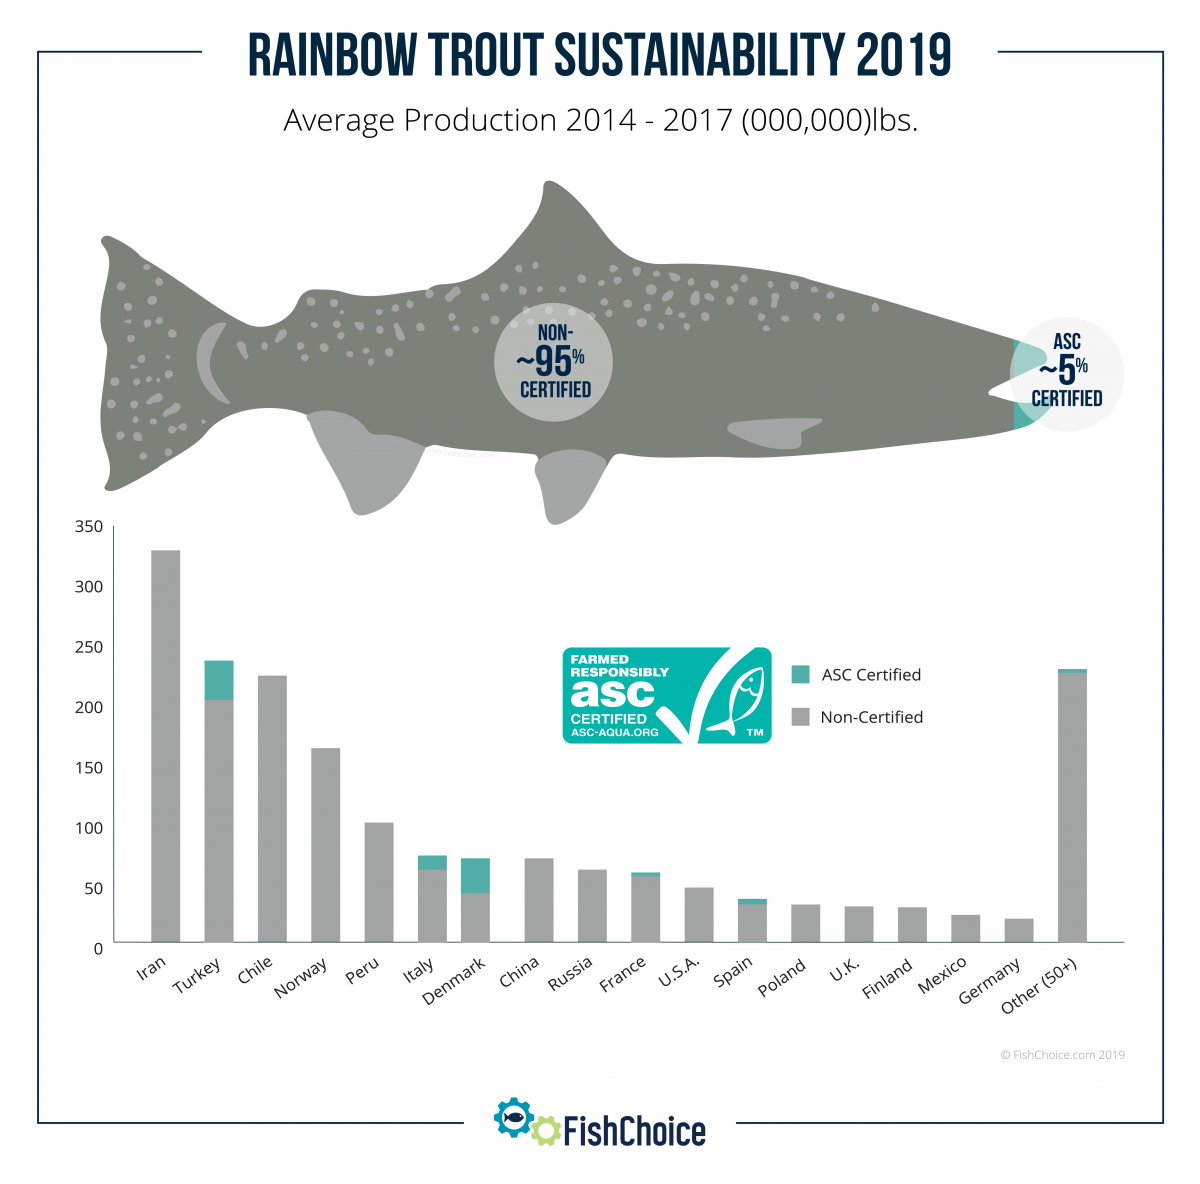 Rainbow Trout Sustainability